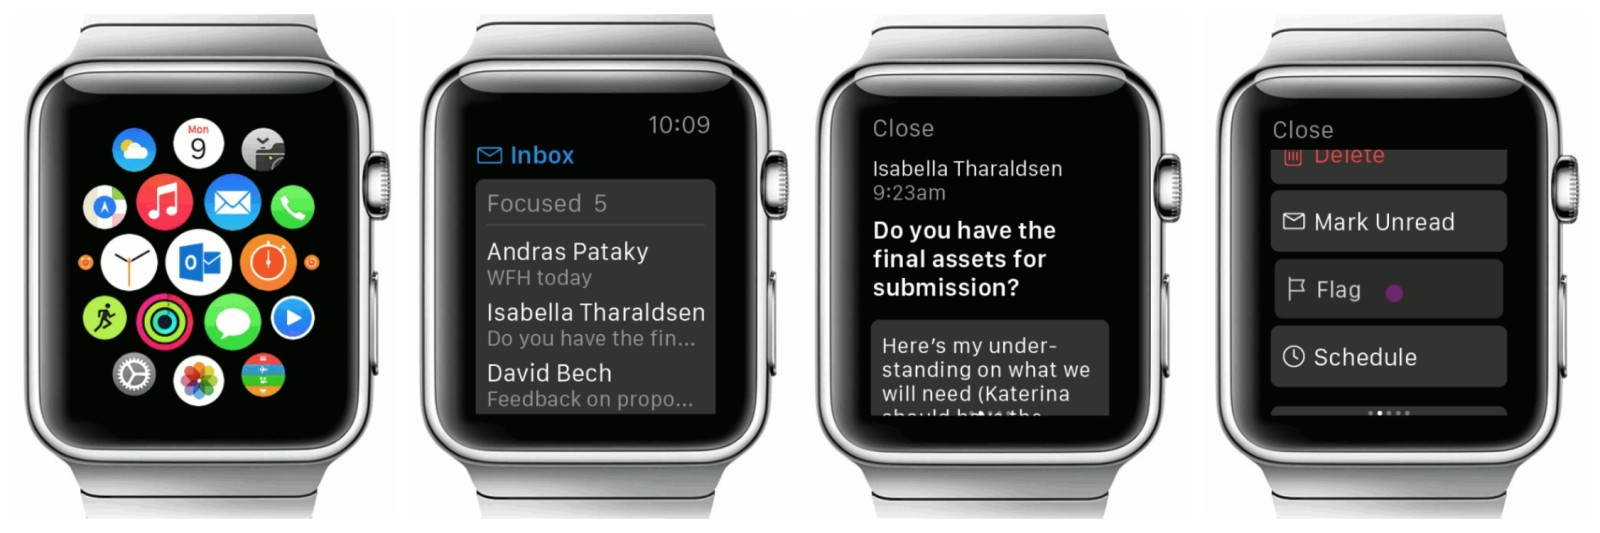 Microsoft Outlook for Apple Watch